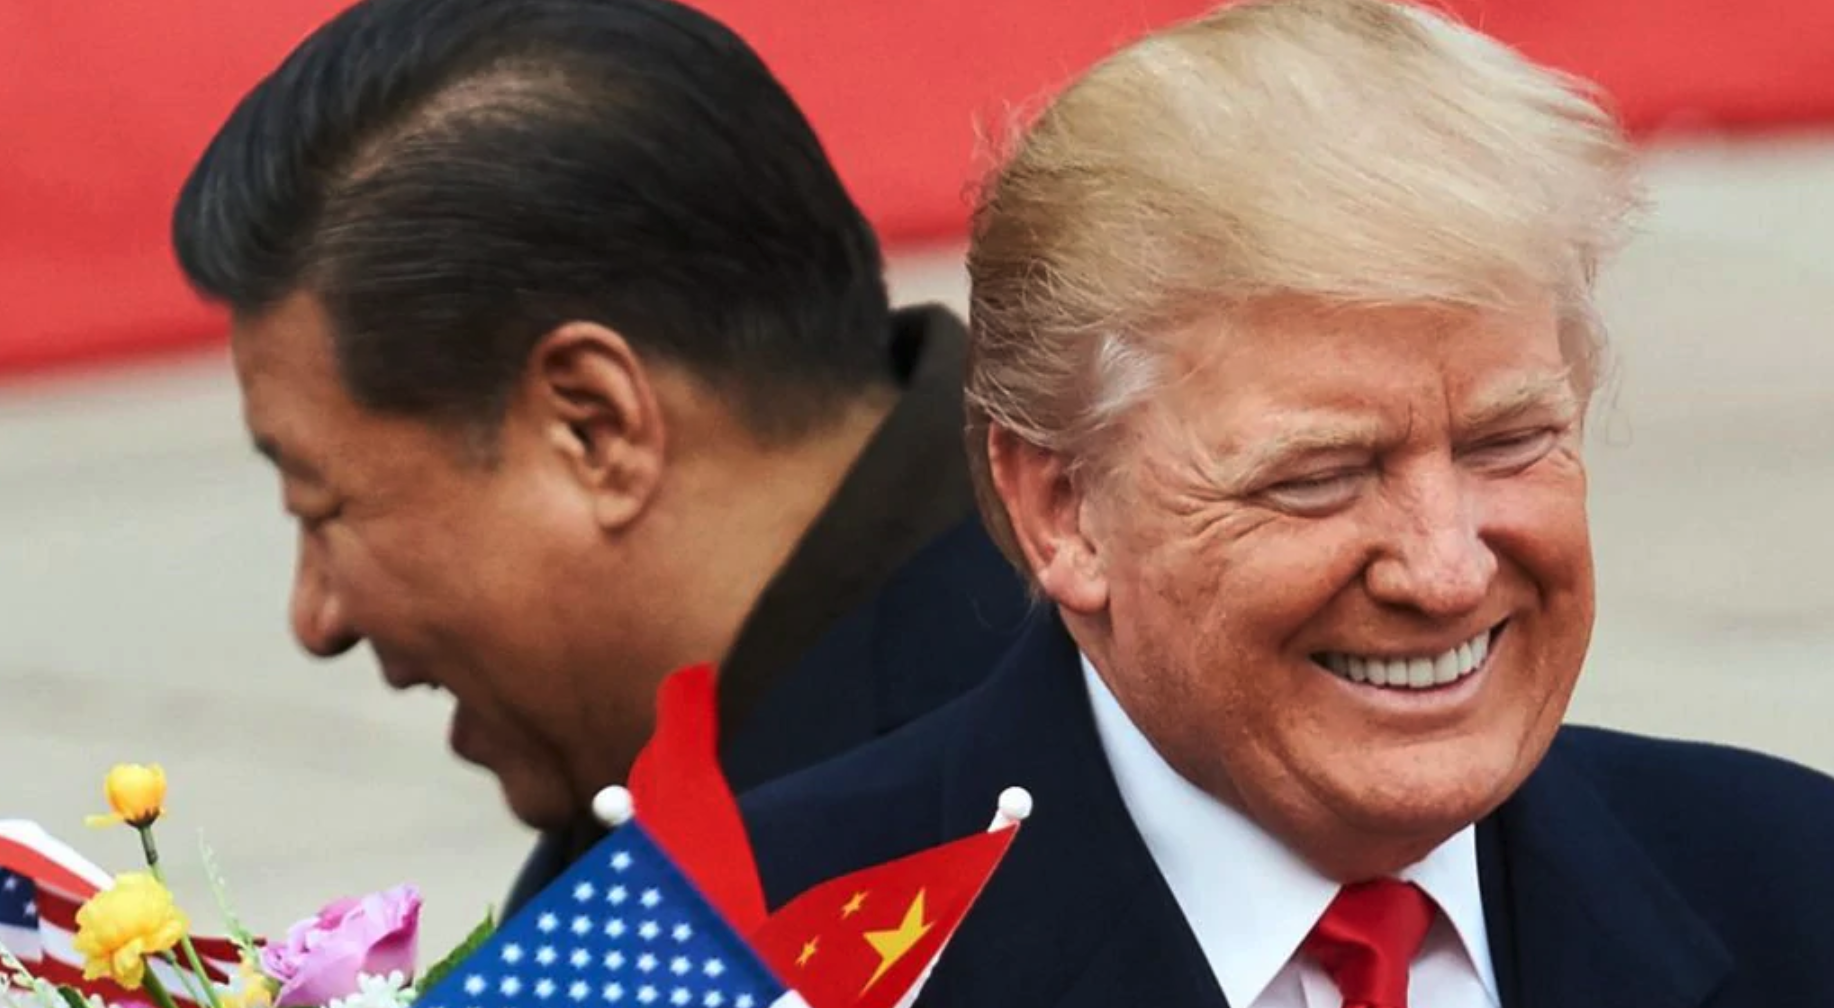 Sorry, China. This isn't the 'largest trade war in economic history'